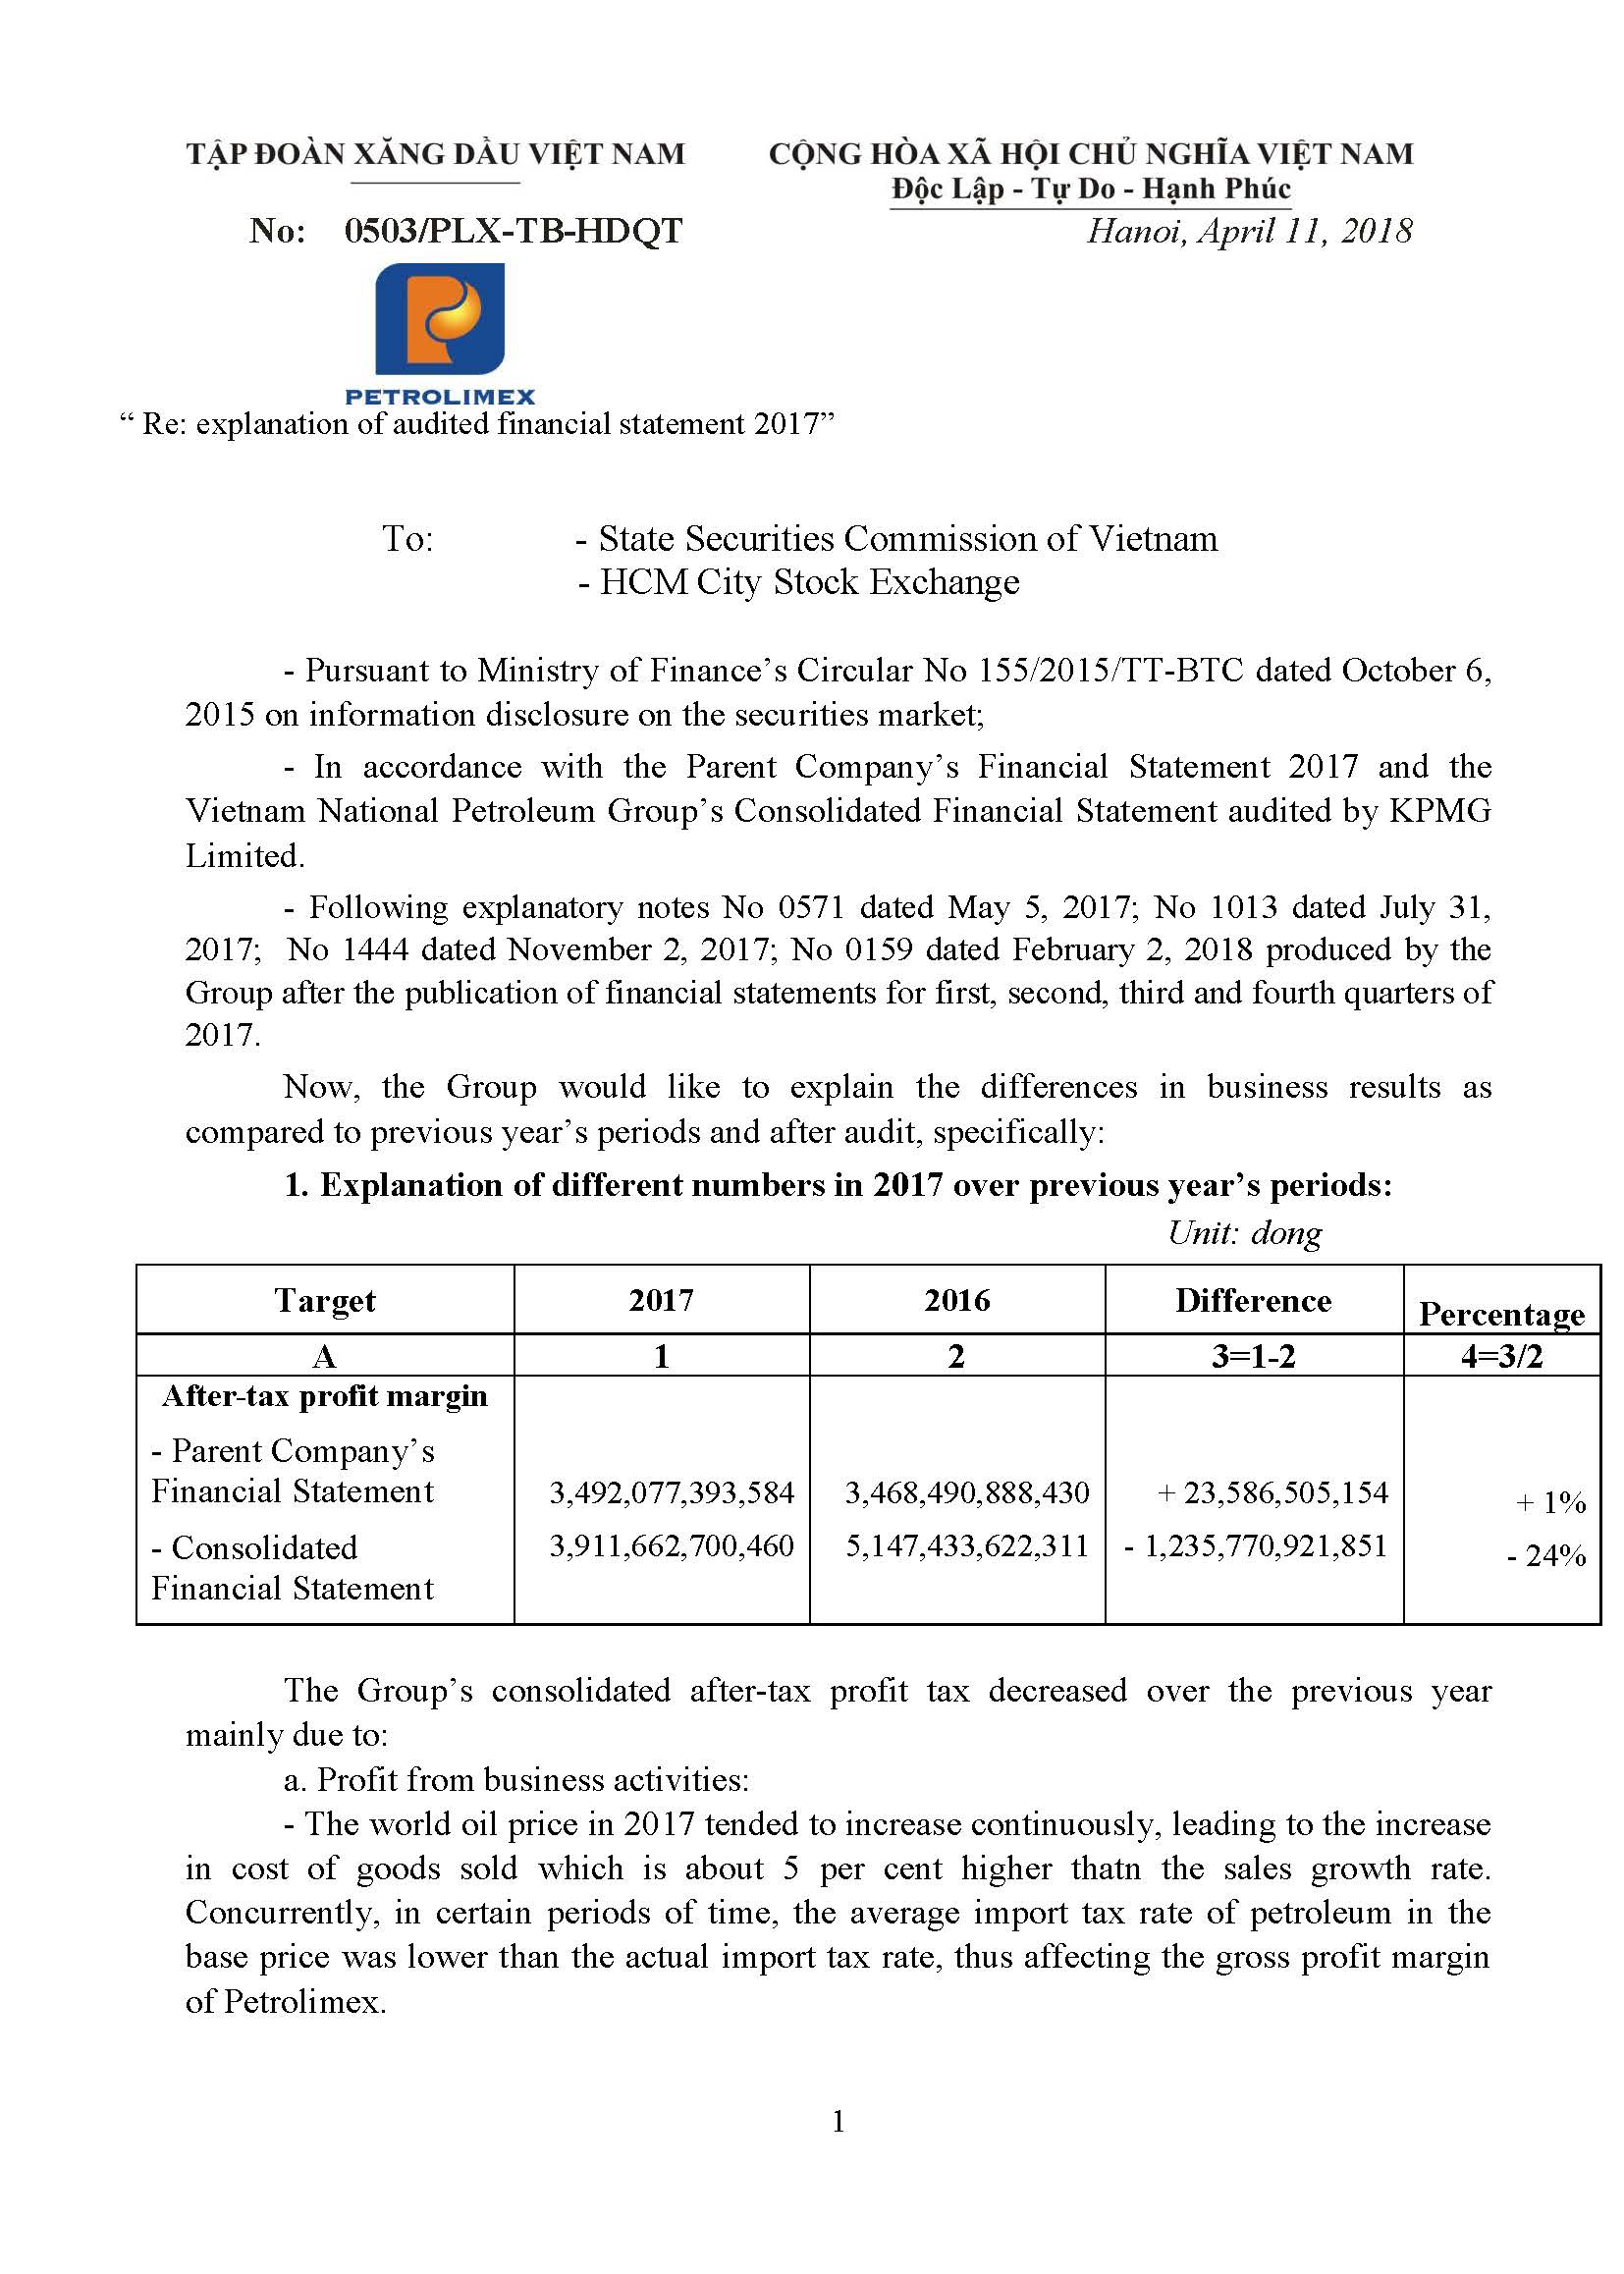 Explanation of audited financial statement 2017 - Petrolimex